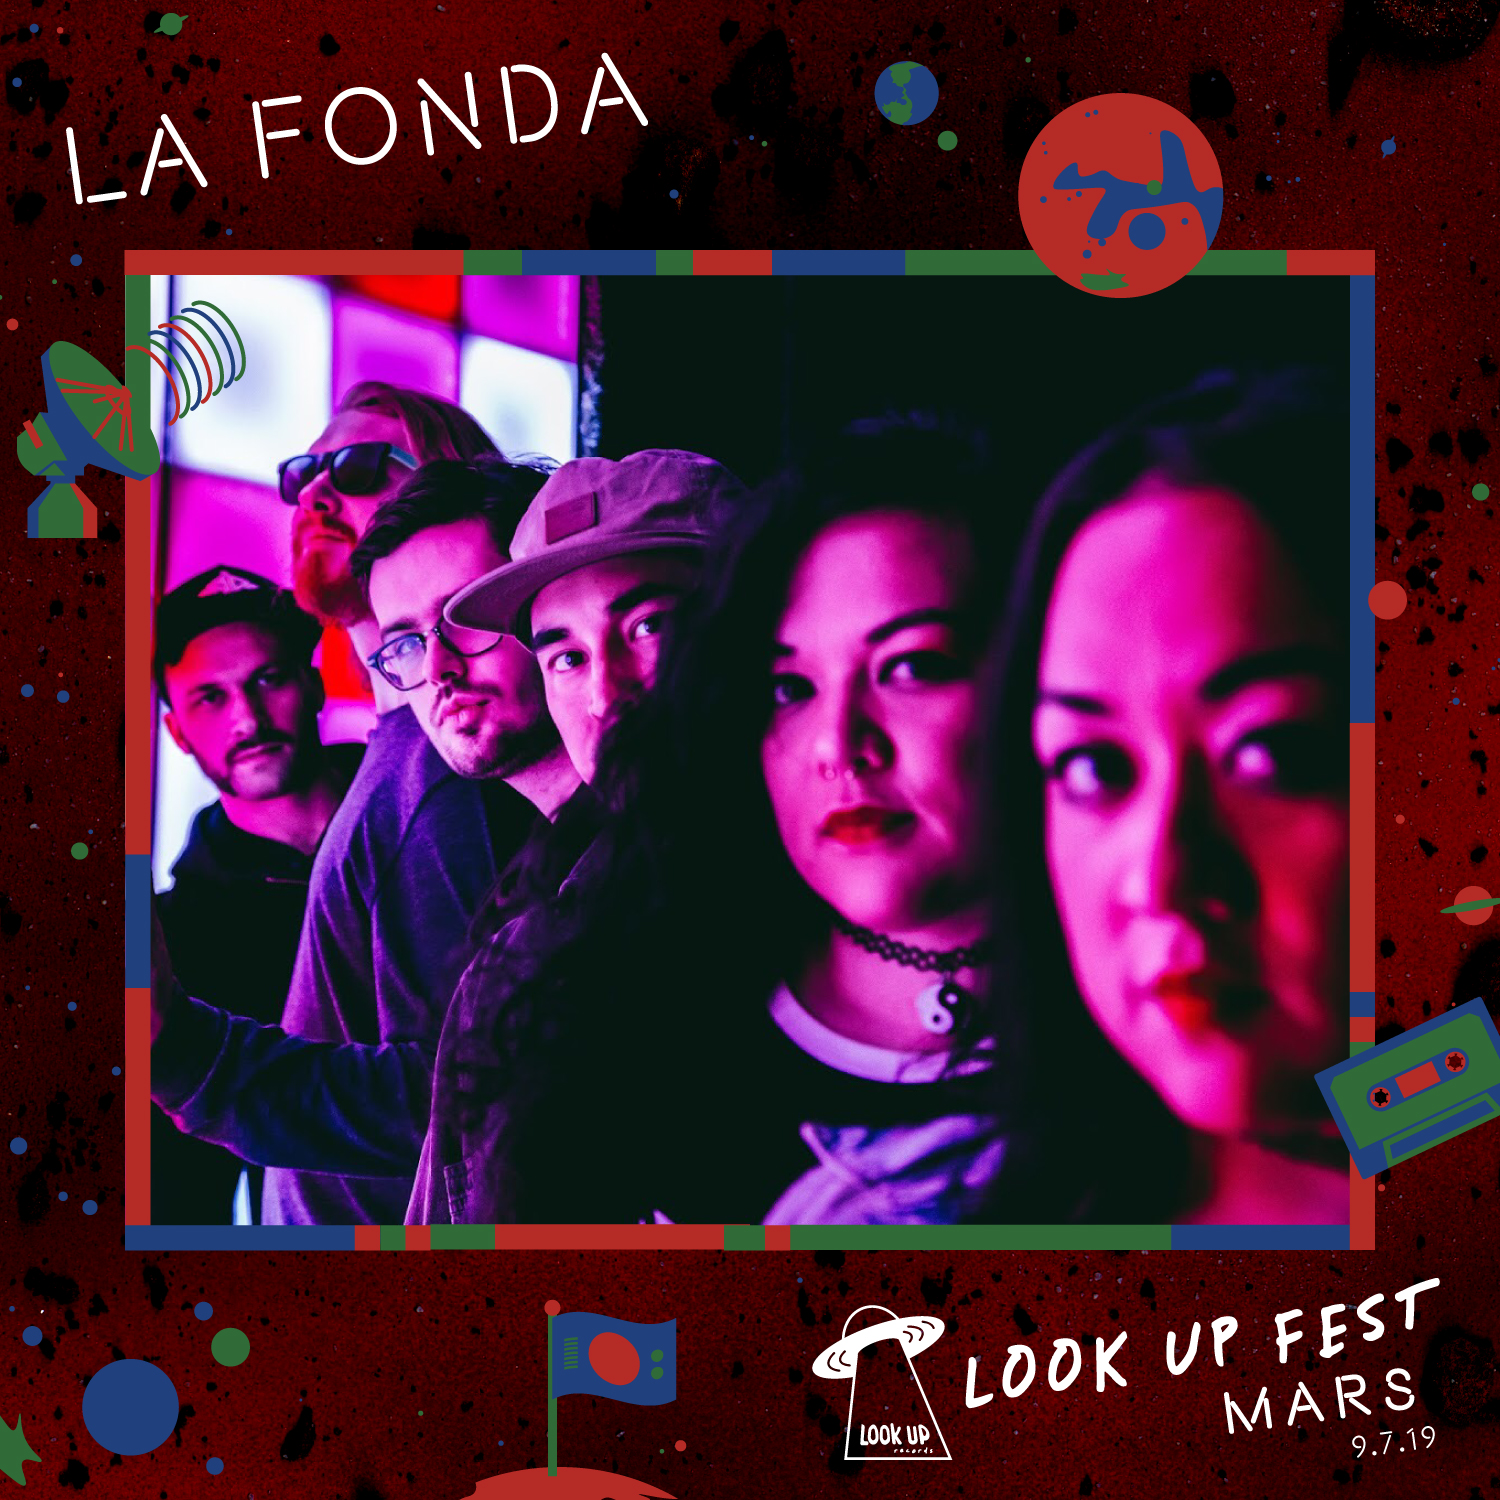 LA FONDA - La Fonda is a lyrically-driven indie dream pop band, defined by sister singer-songwriters Veronica and Valerie Topacio, exploring love, longing and loss with harmonically rich vocals, reverberating, 60s surf-esque guitars, driving bass lines and synths. Now working on their debut, full-length album, which set to release in late 2019, La Fonda's songs are about living paycheck-to-paycheck, heartbreak and healing, the lingering effects of infidelity, stripped confidence, and adolescent traumas. The band hopes their music steers people closer to their core, reminding listeners that the world needs more people dedicated to showing up fully in love and life as their most authentic, confident and beautifully vulnerable selves.